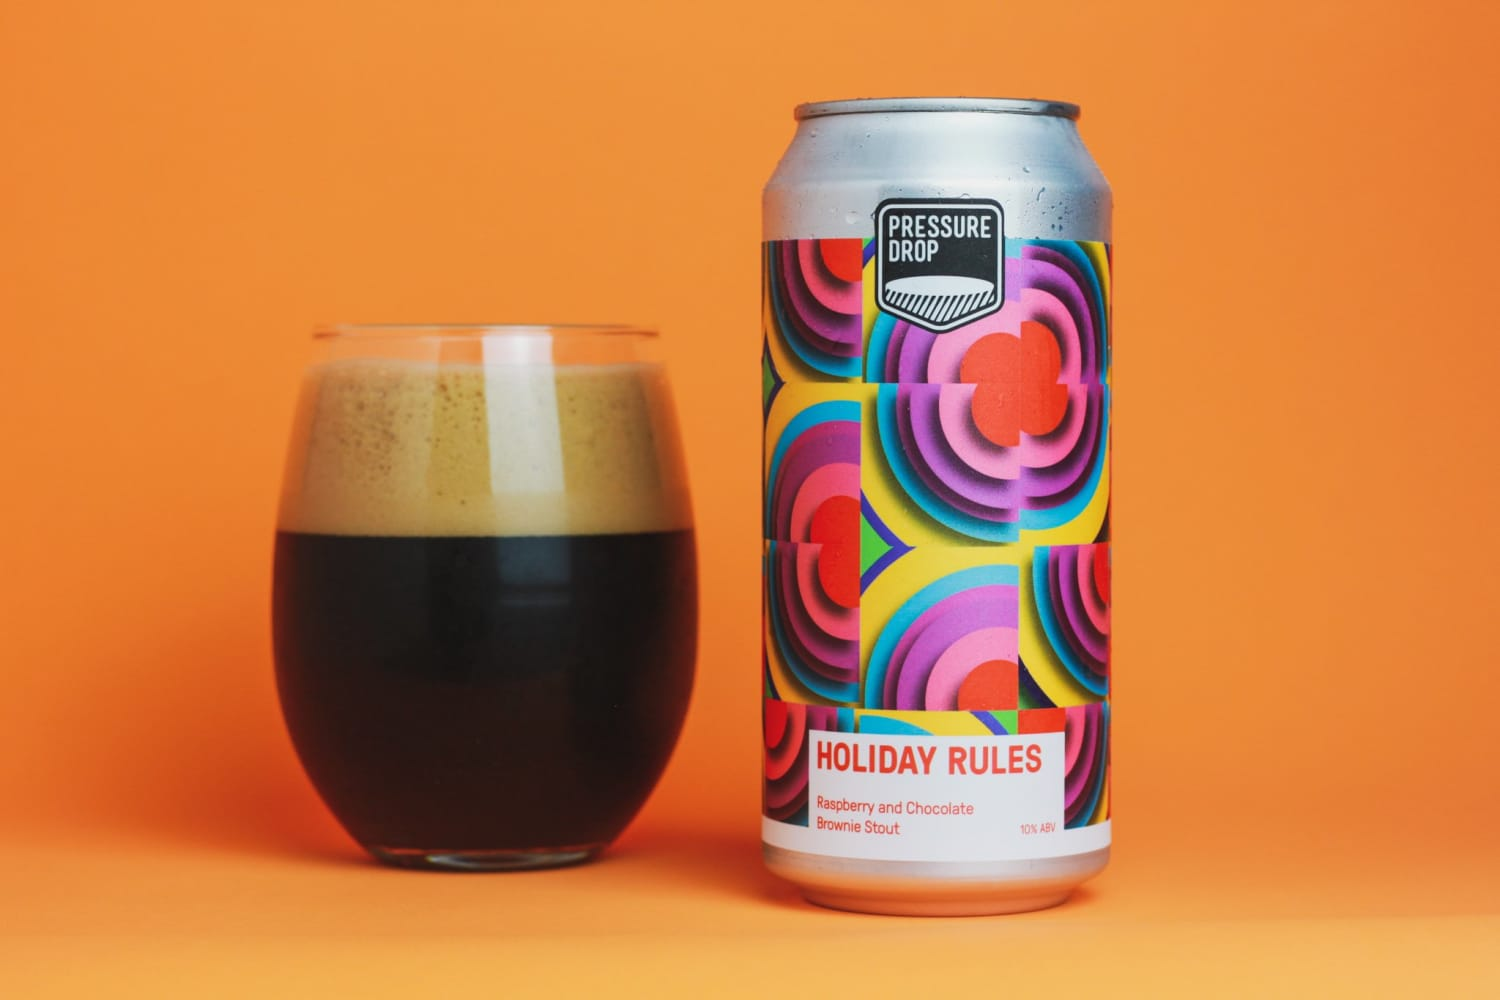 Holiday Rules 10% Raspberry & Chocolate Brownie Stout